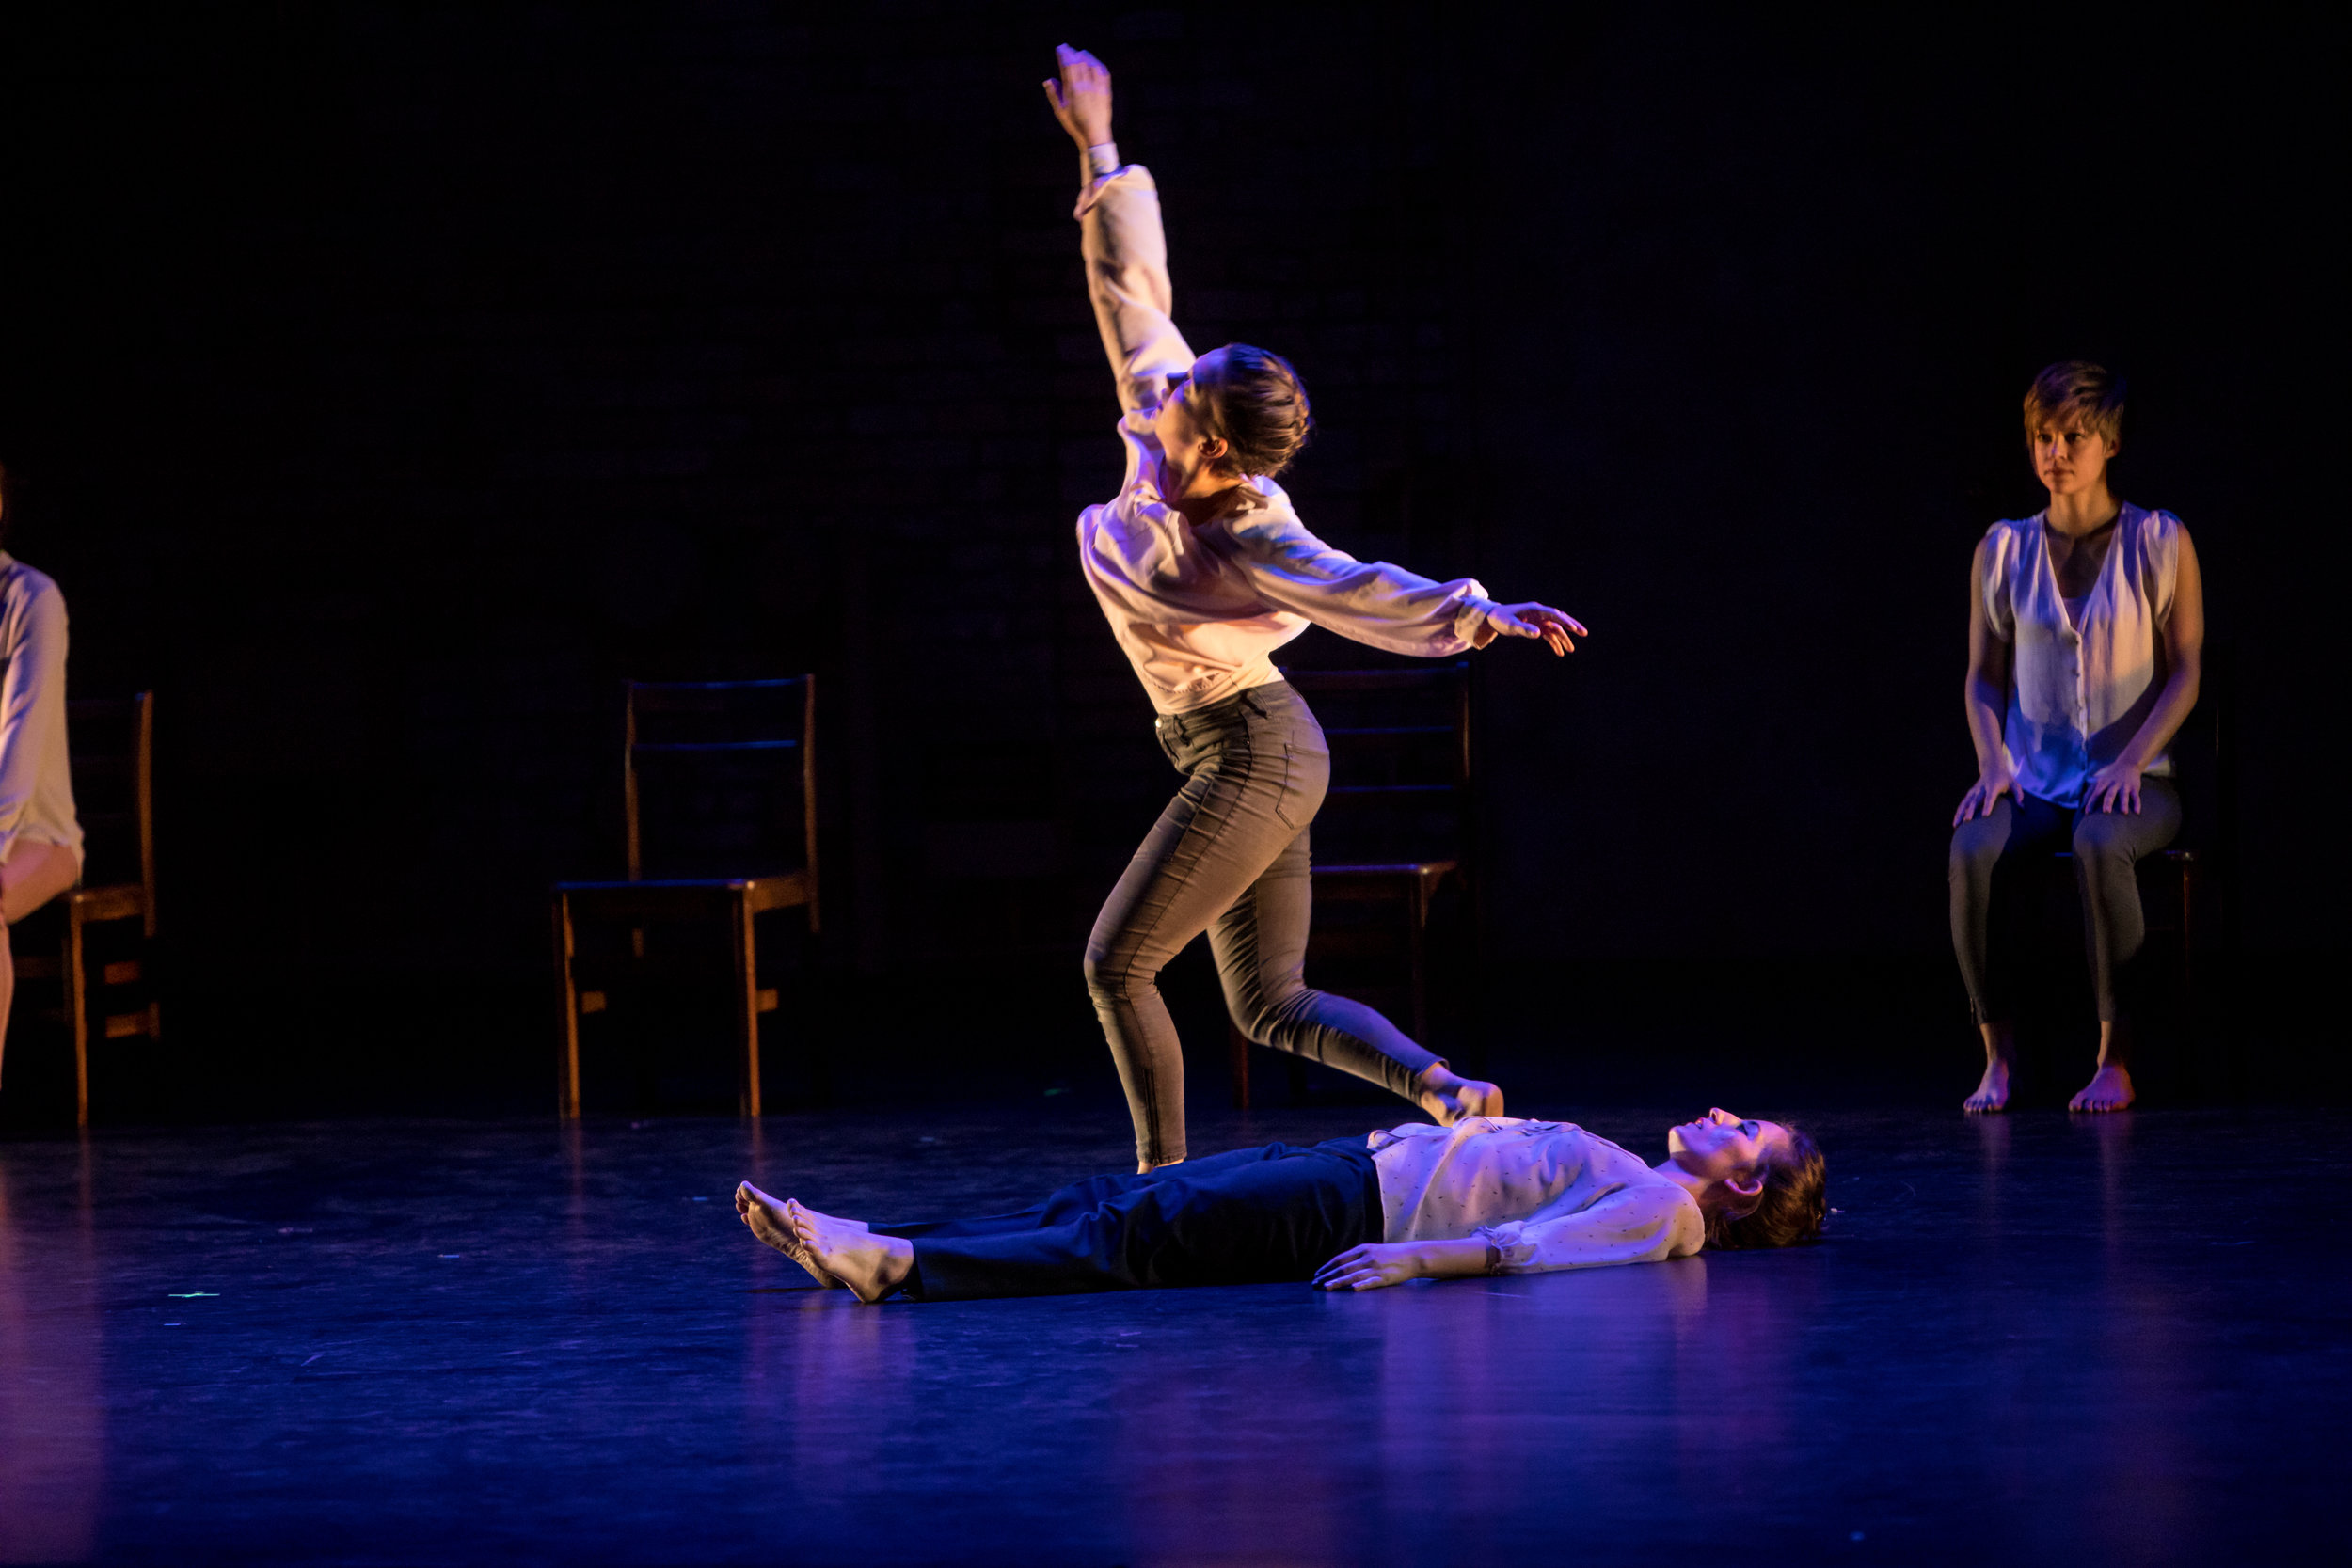 The artist dancing in  Threshold , 2010, by Mathew Janczewski, ARENA Dances.  Performance on 11/10/2018 at the Fitzgerald Theater. Photo by Dan Norman.